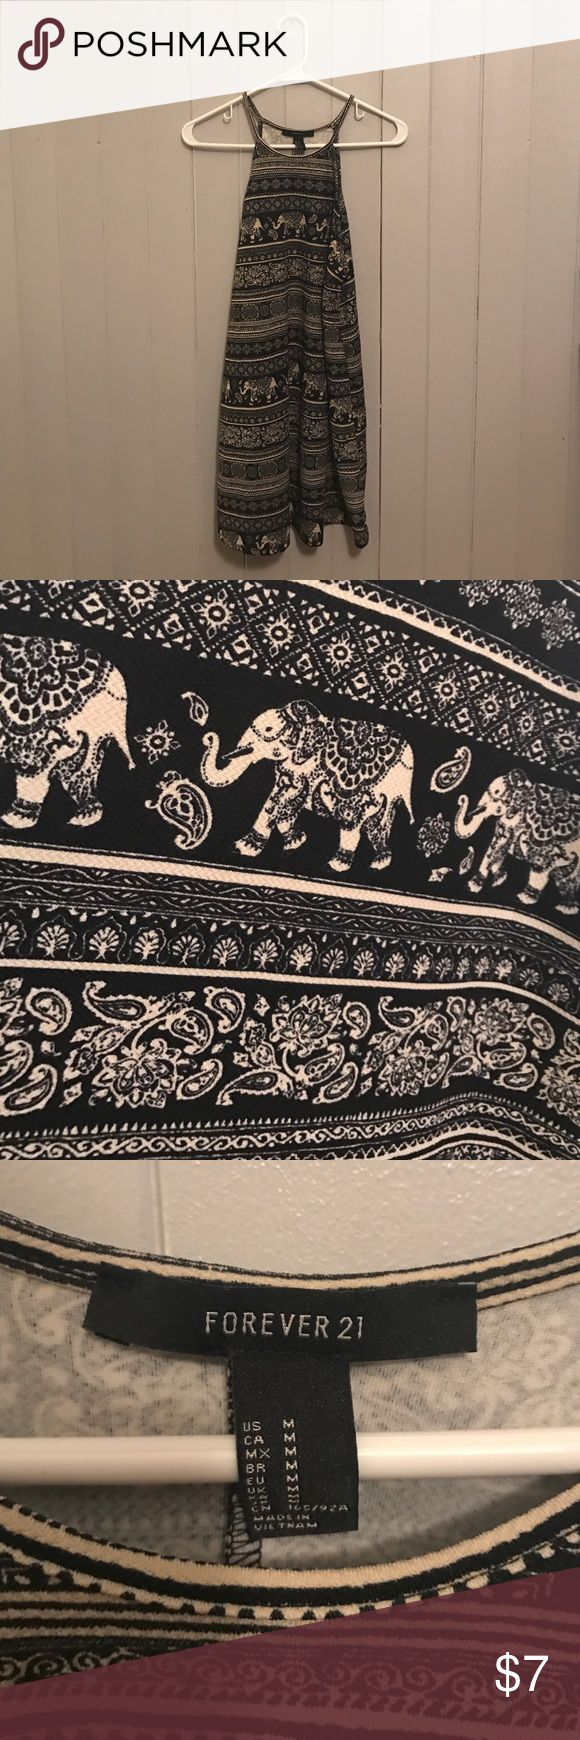 """Forever 21 black elephant tribal print dress Black and cream/tan elephant tribal print dress from Forever 21. I'm 5'4"""" and it falls a little above the knees. This was worn 1-2 times and in like new condition. Forever 21 Dresses Midi"""